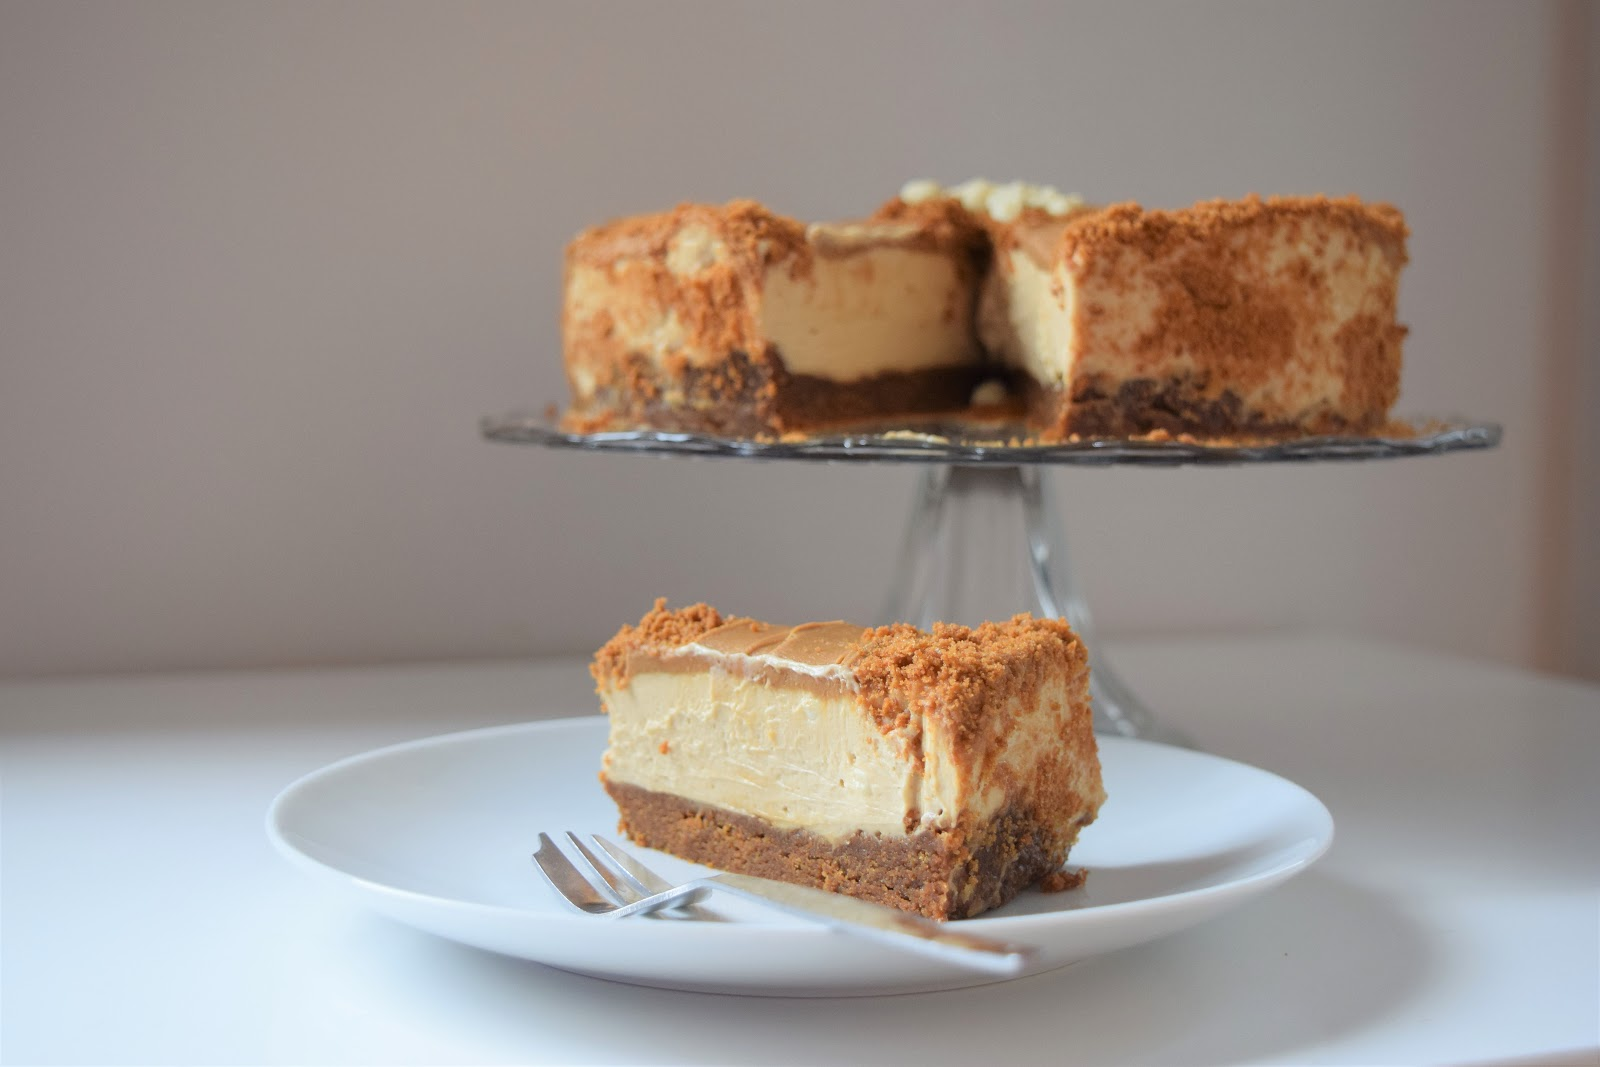 Lotus Biscoff Cheesecake A Wee Bit Of Cake